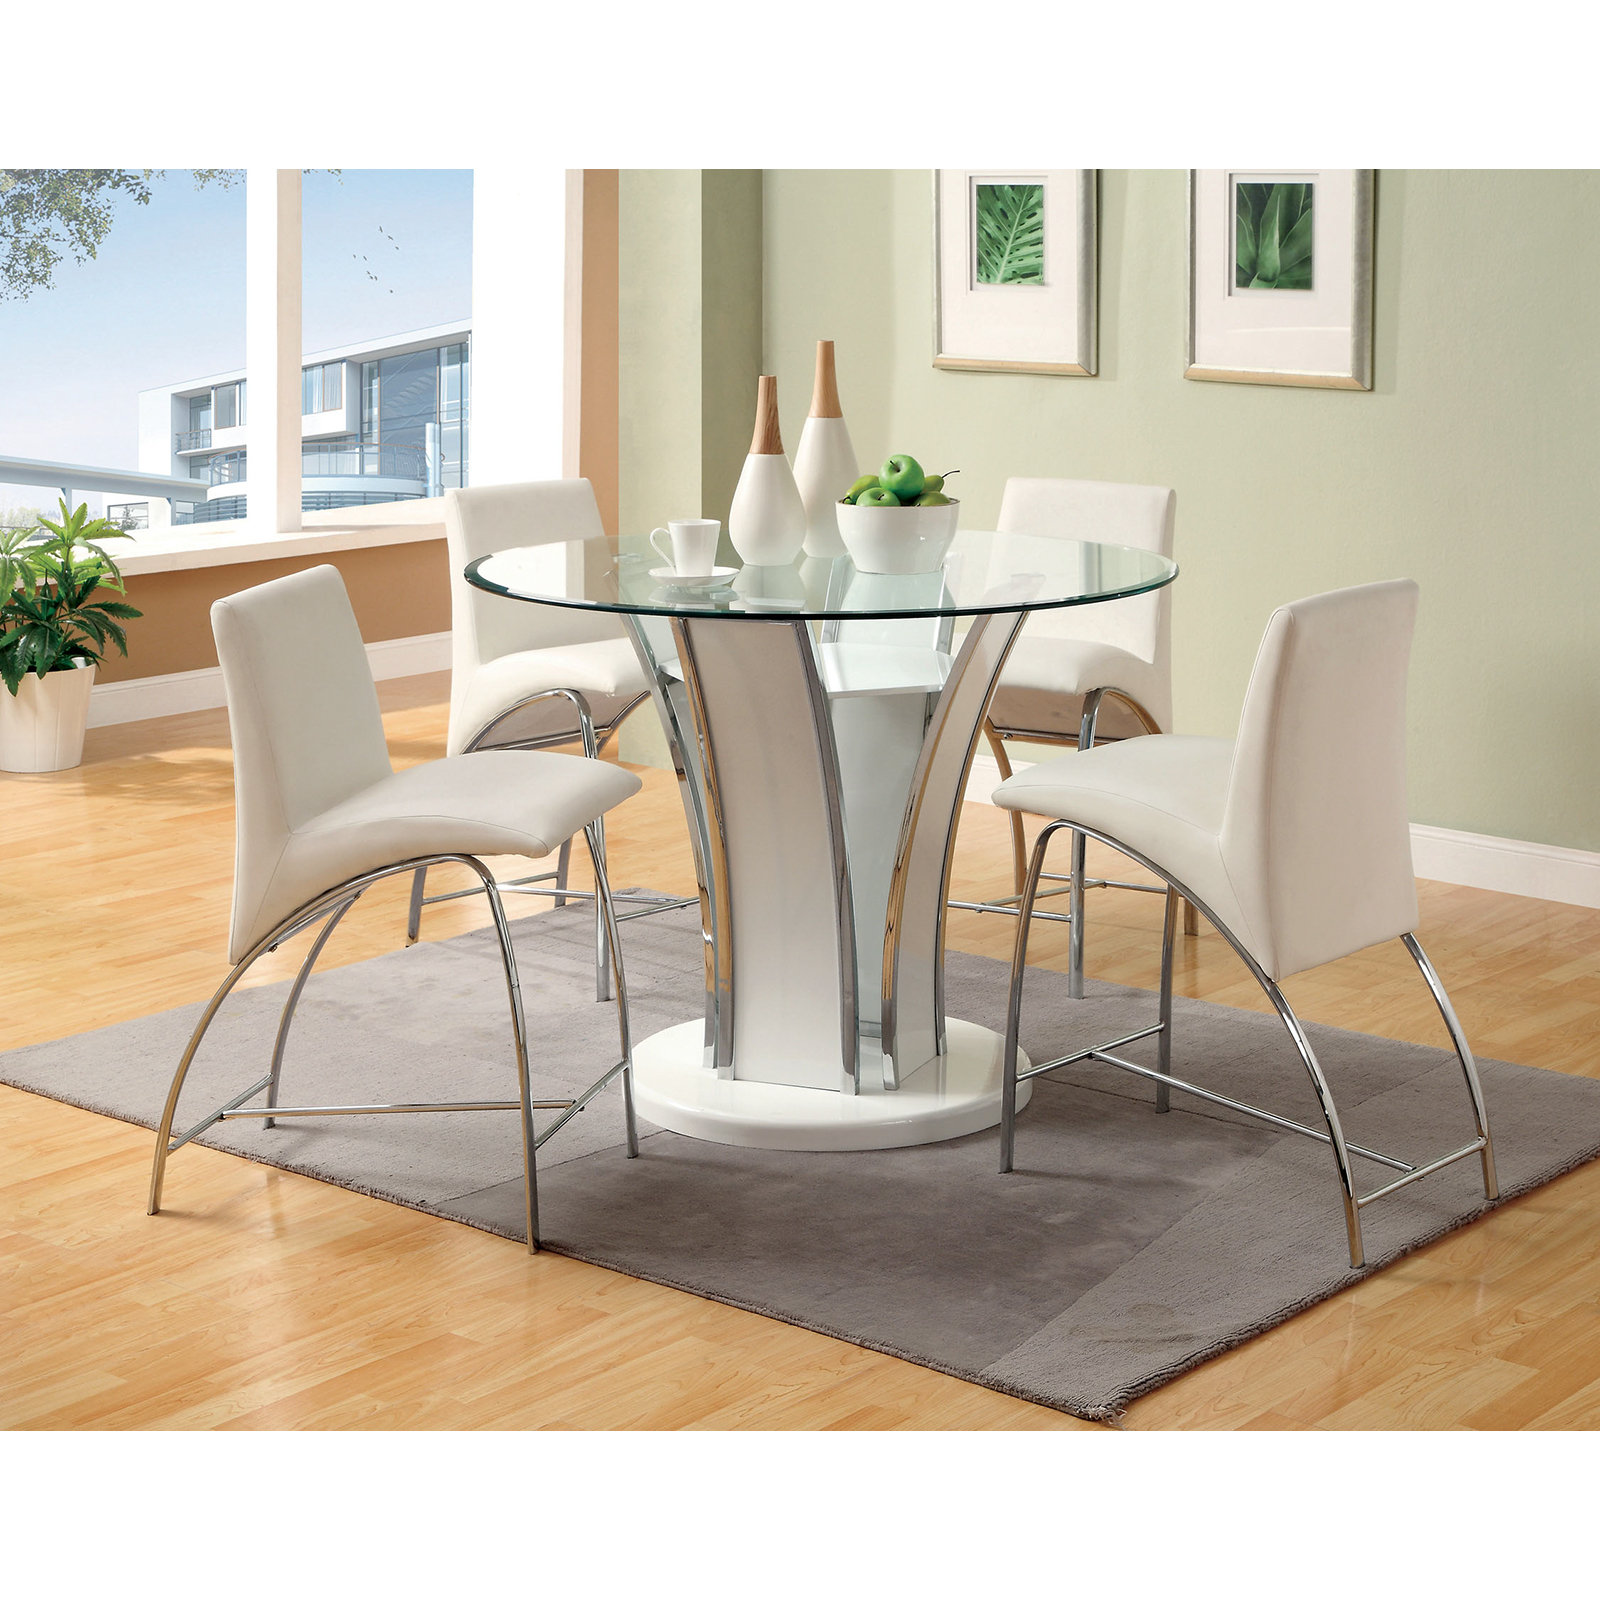 Counter Height Glass Dining Table Set : ... Piece Counter Height Round Glass top Dining Set - White at Hayneedle